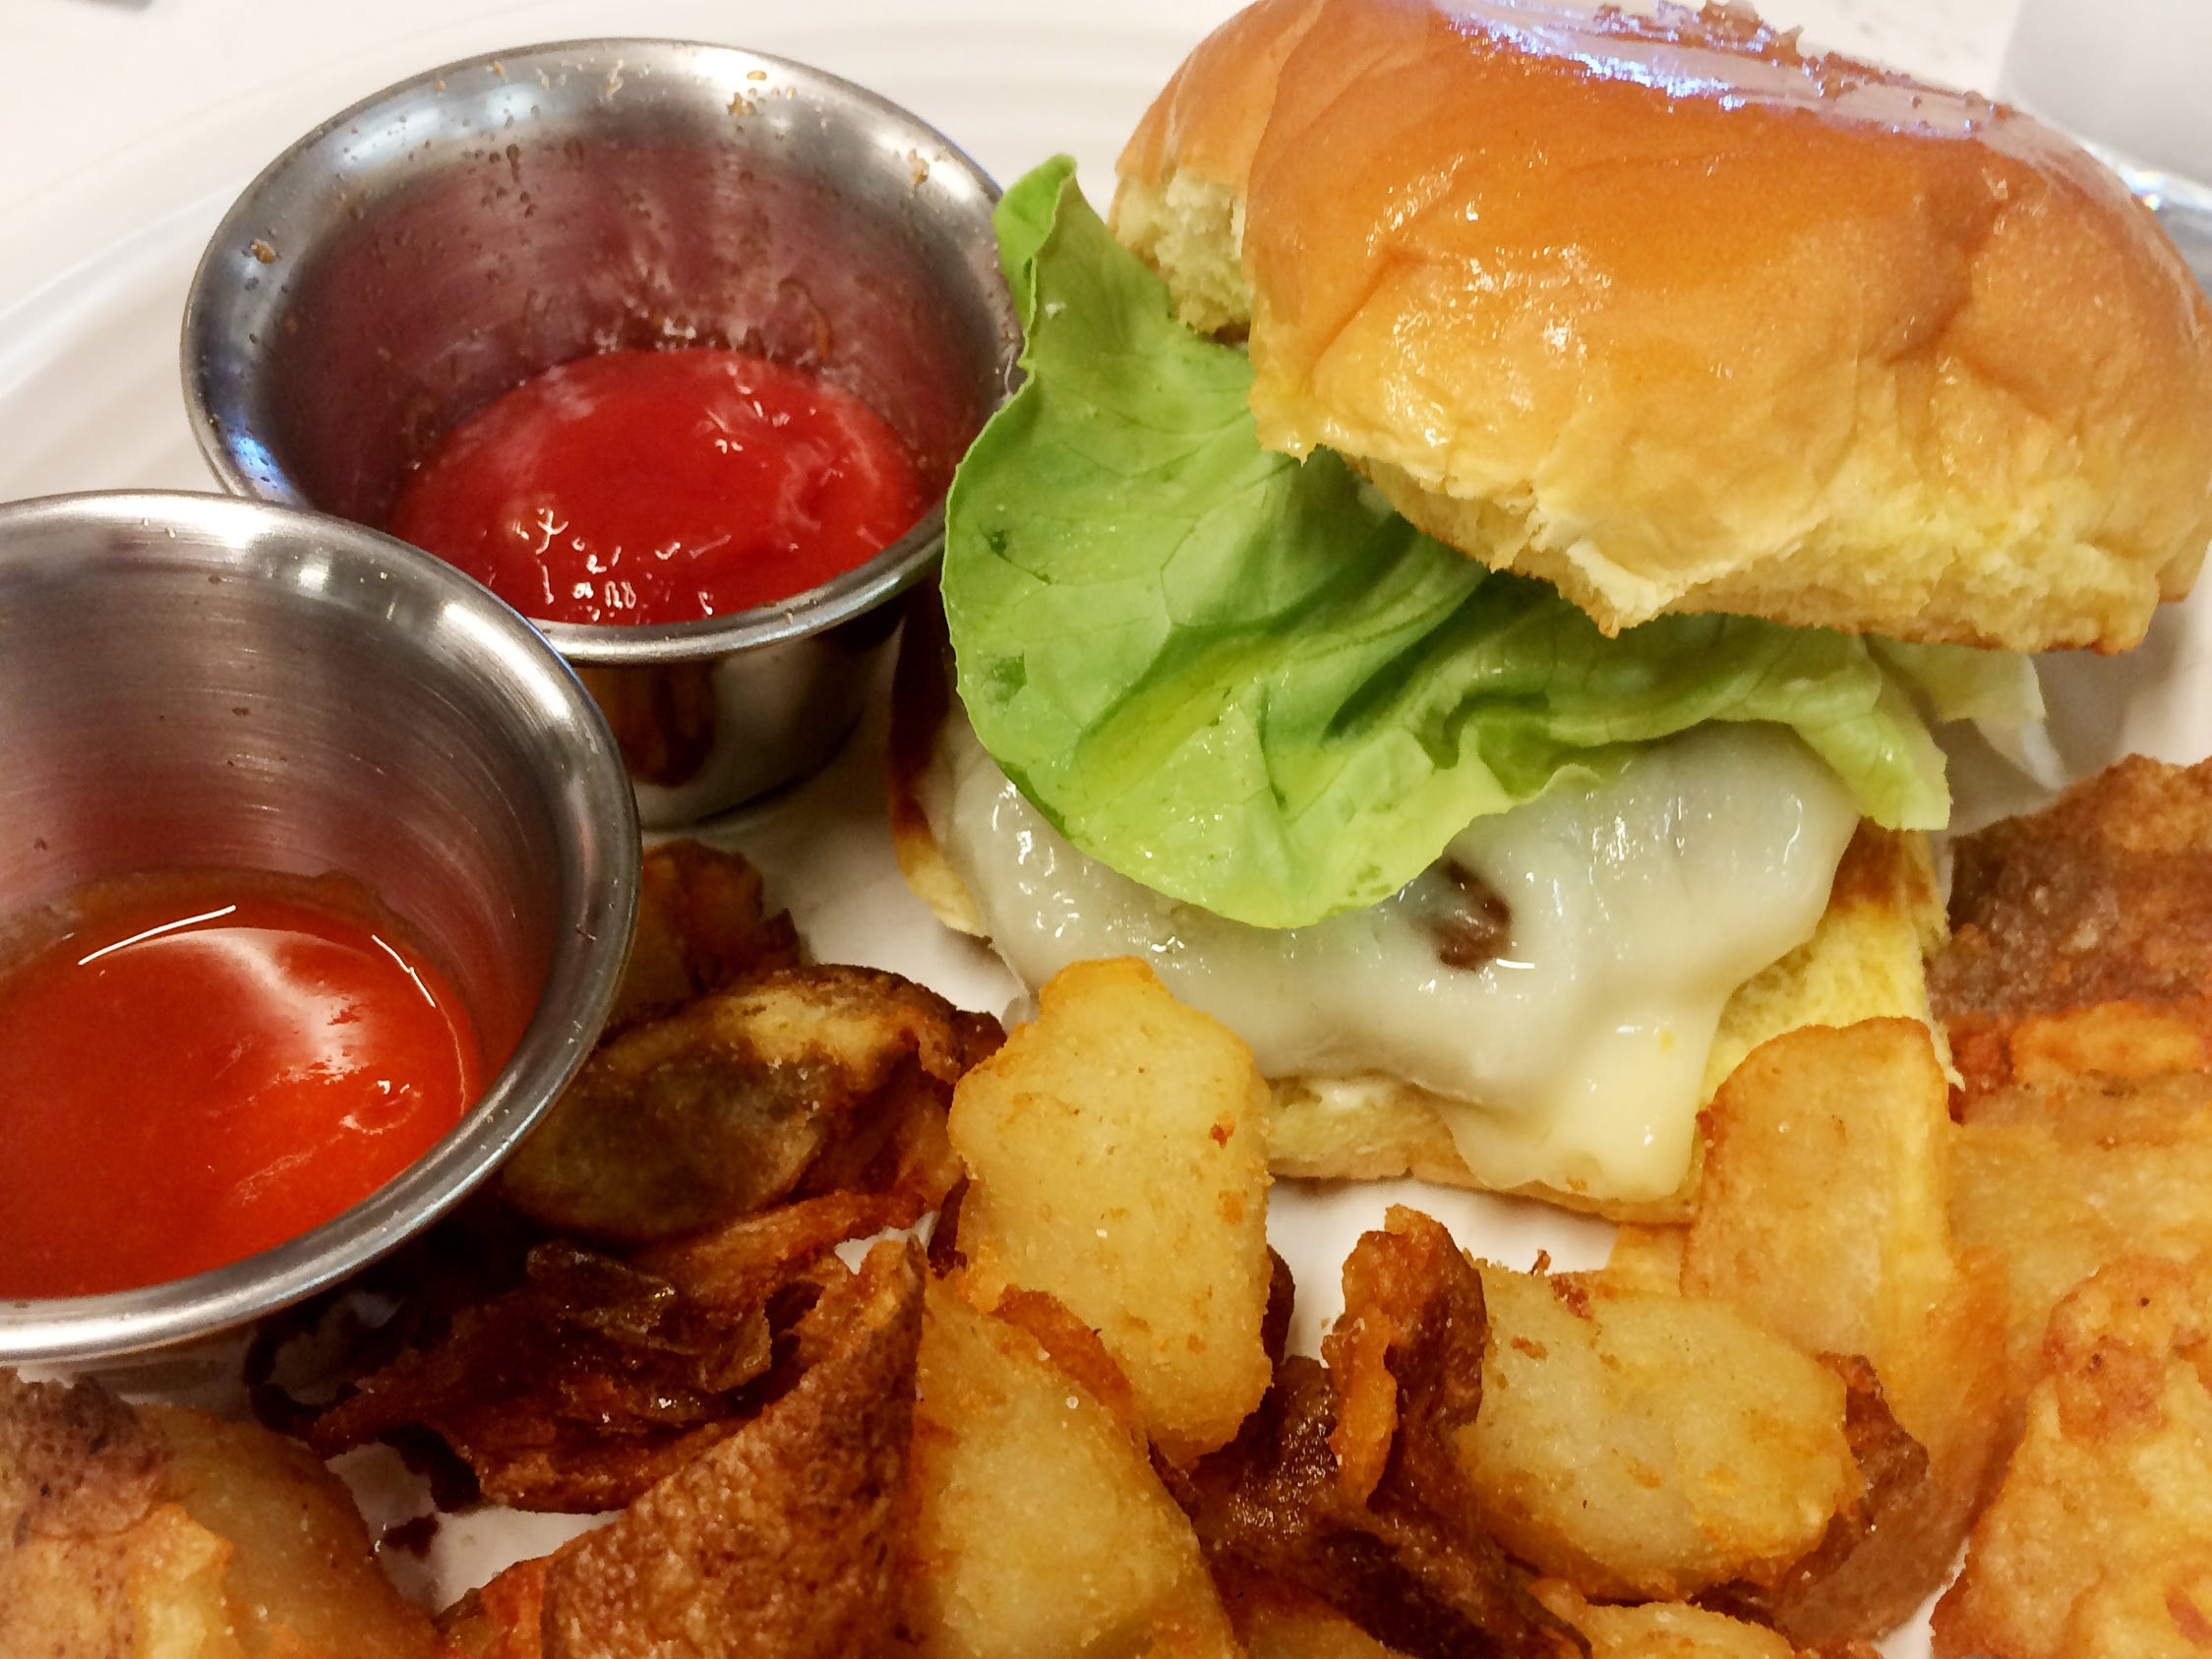 House burger (beef from Porter Road Butcher), crispy potatoes, house hot sauce and ketchup at Stay Golden restaurant and roastery.